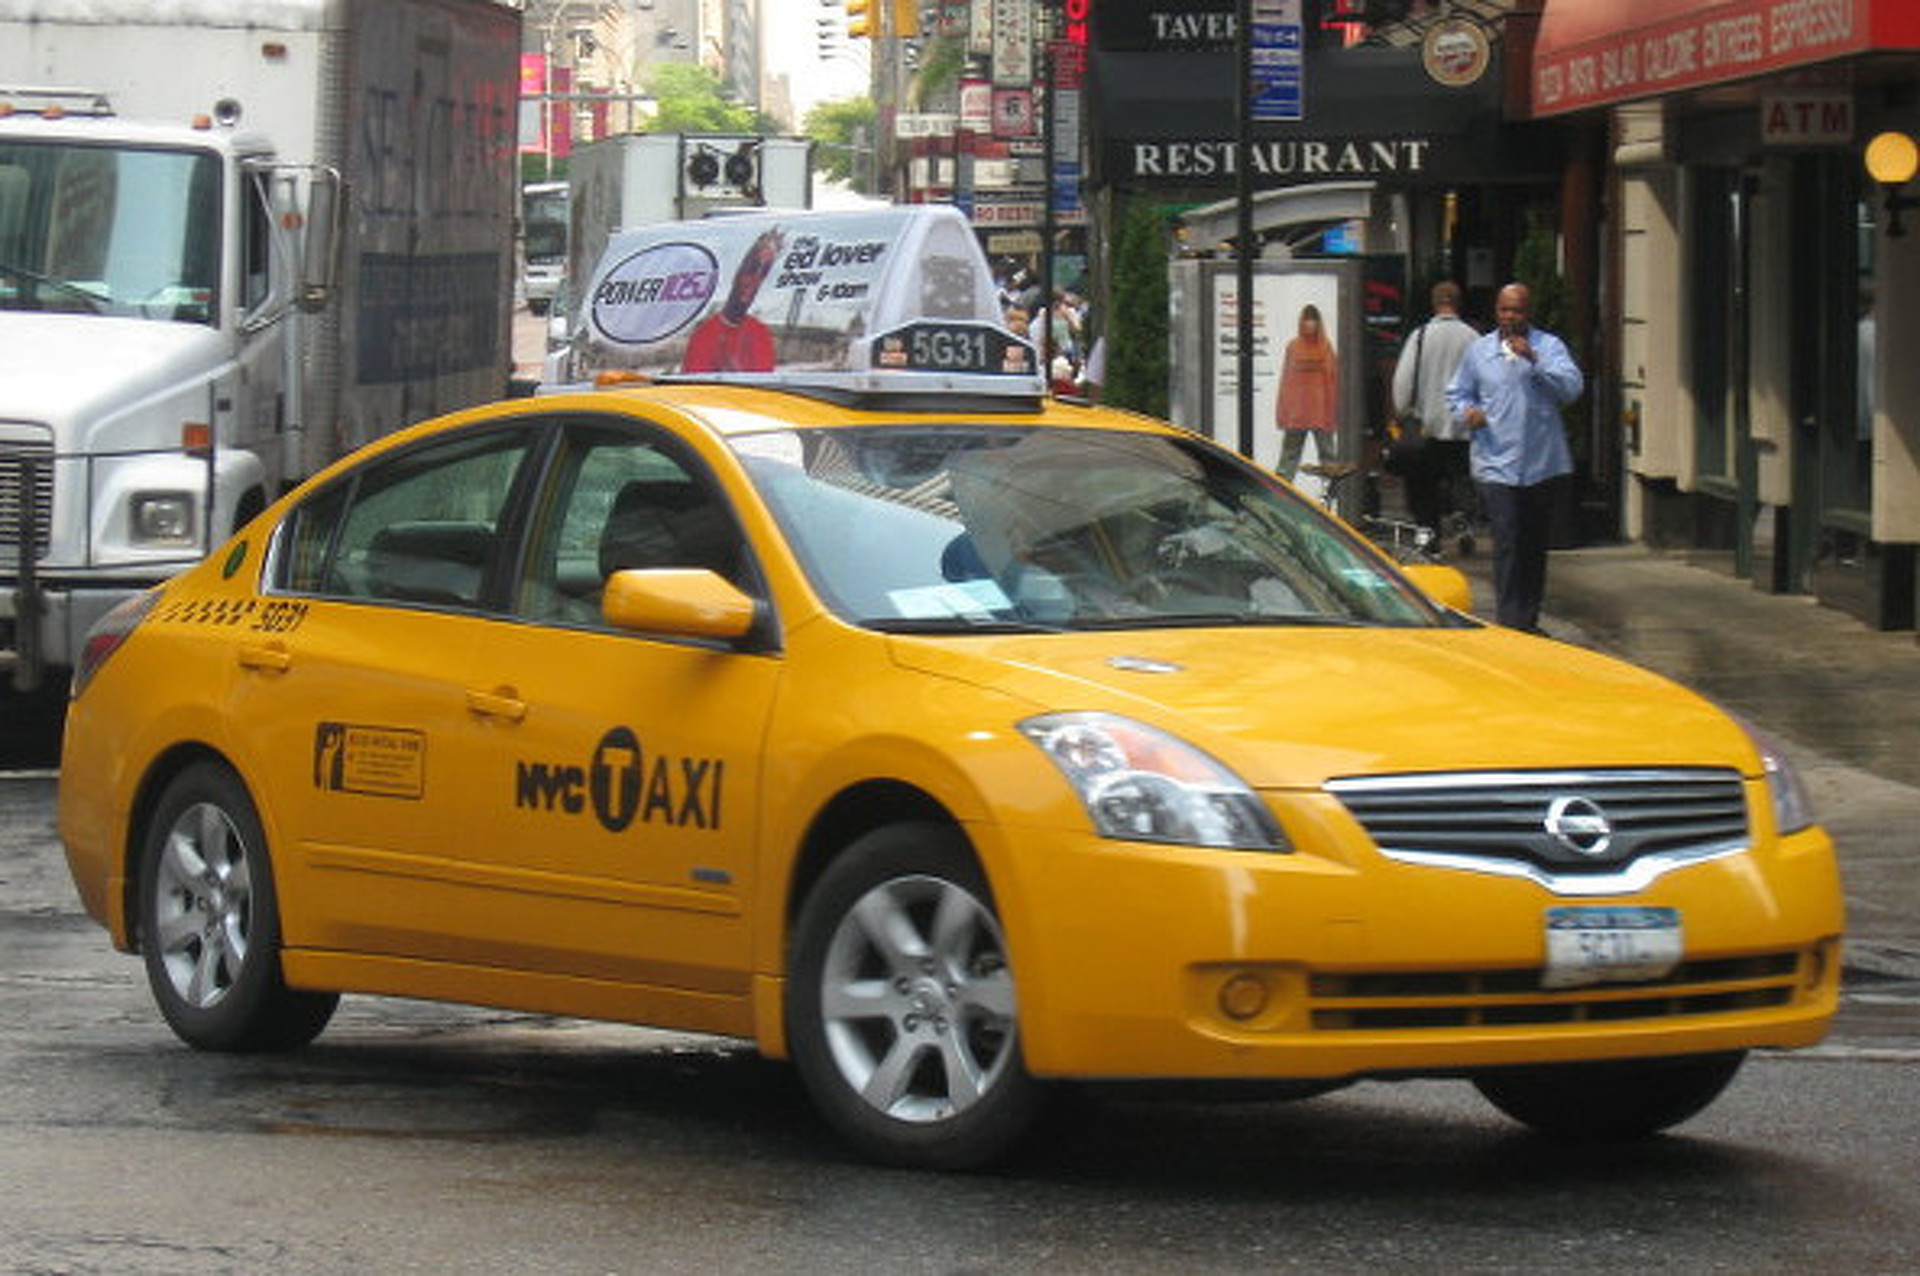 Will the Taxi Cab Theater Become one of NYC's Best New Attractions?